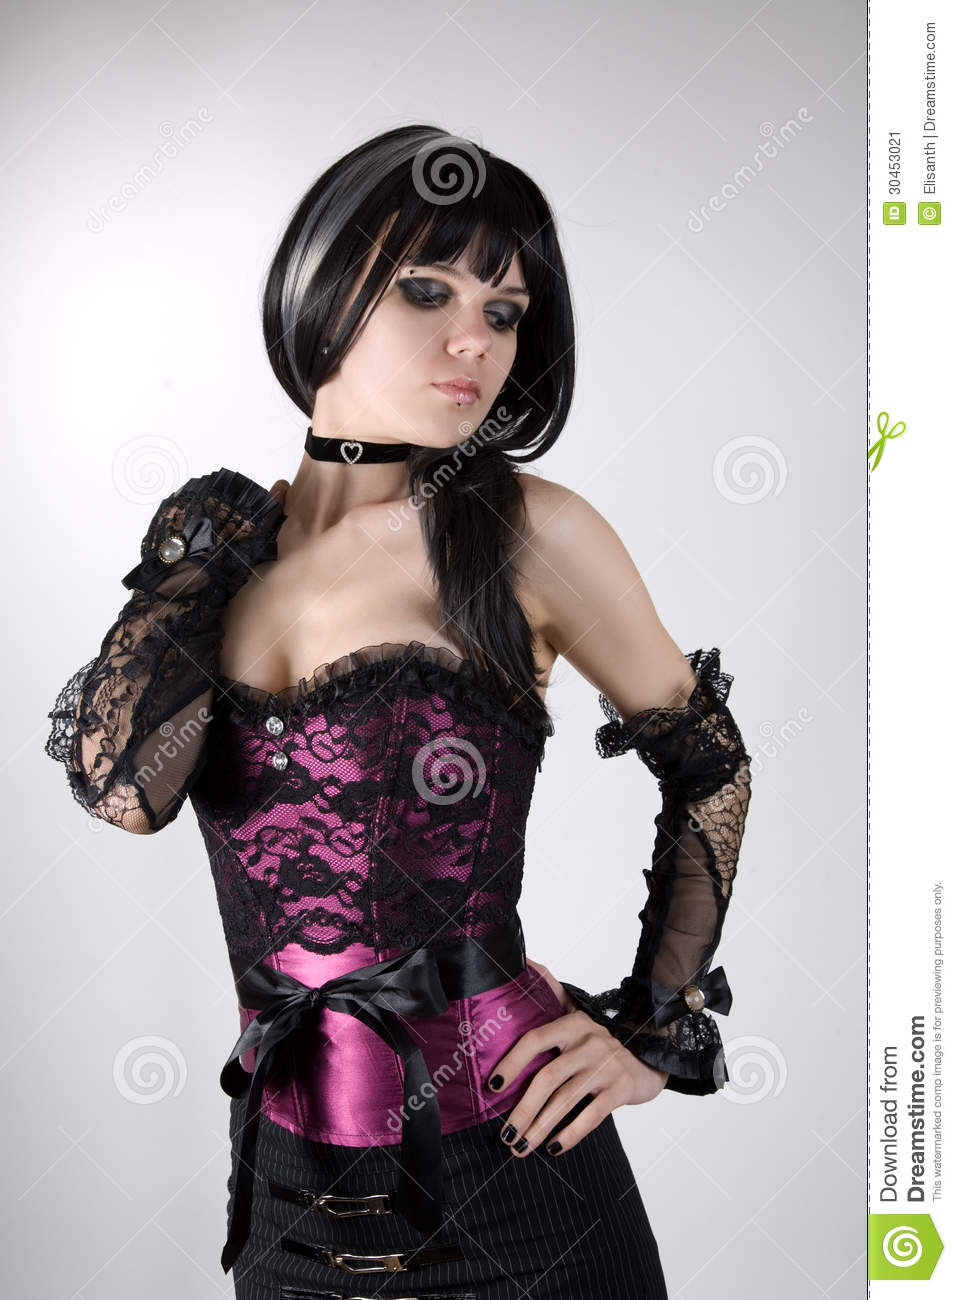 Gothic girl in purple corset and black gloves